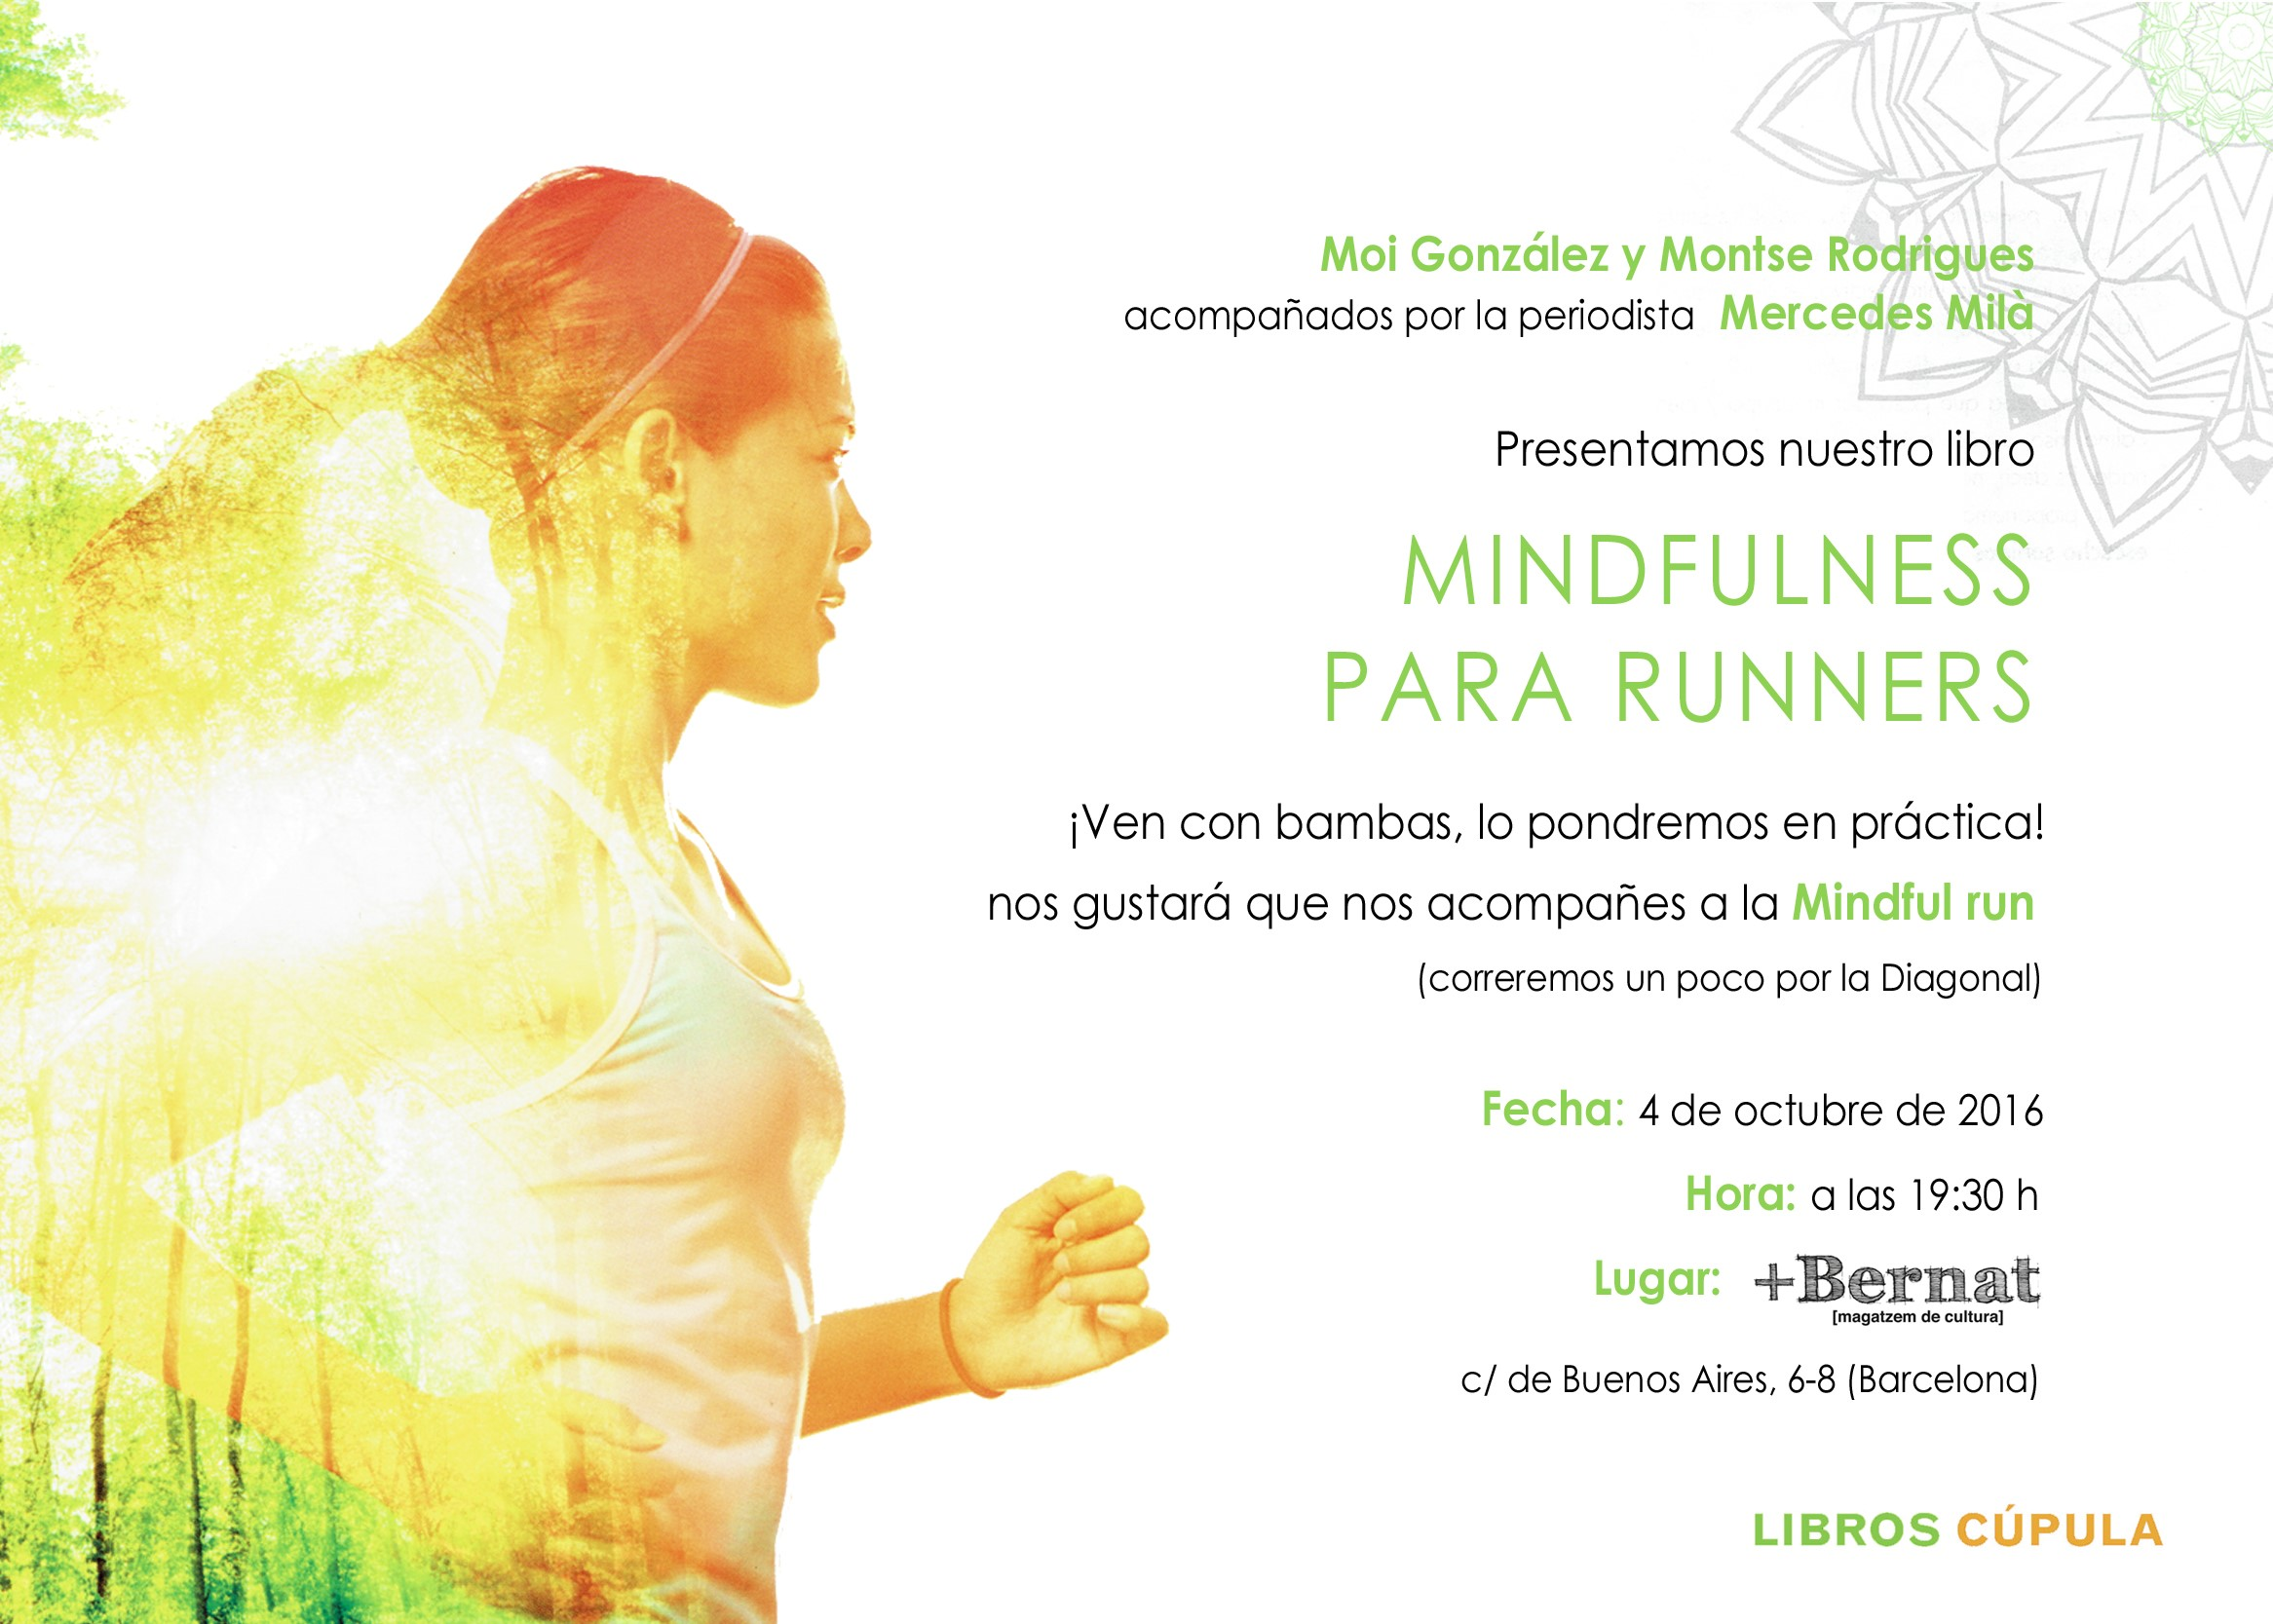 MINDFULNESS PARA RUNNERS - MINDFUL RUN EN BARCELONA